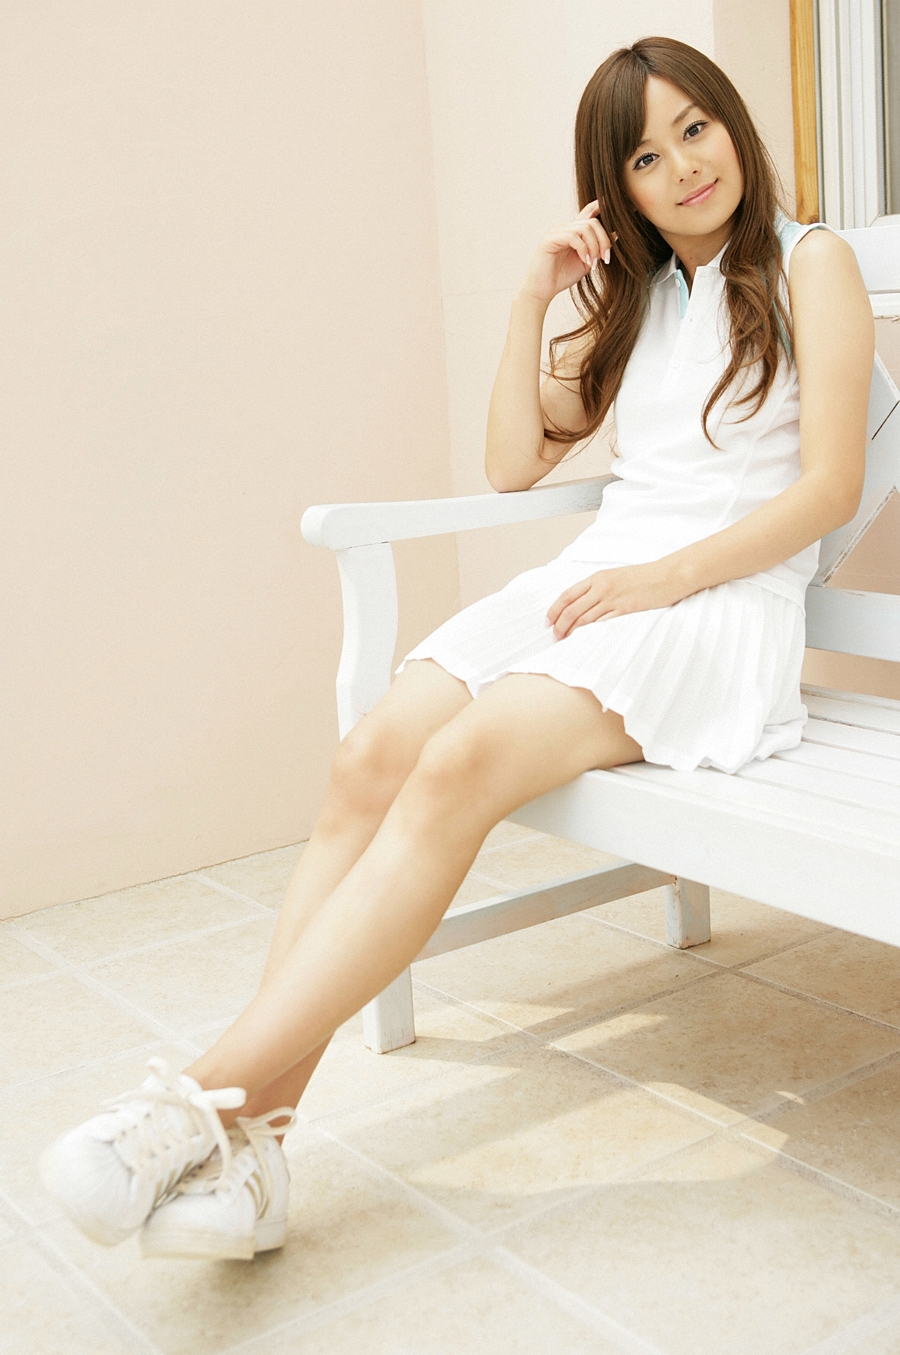 Japanese Girl Pictures (cute pic): Play tennis wiht Jun